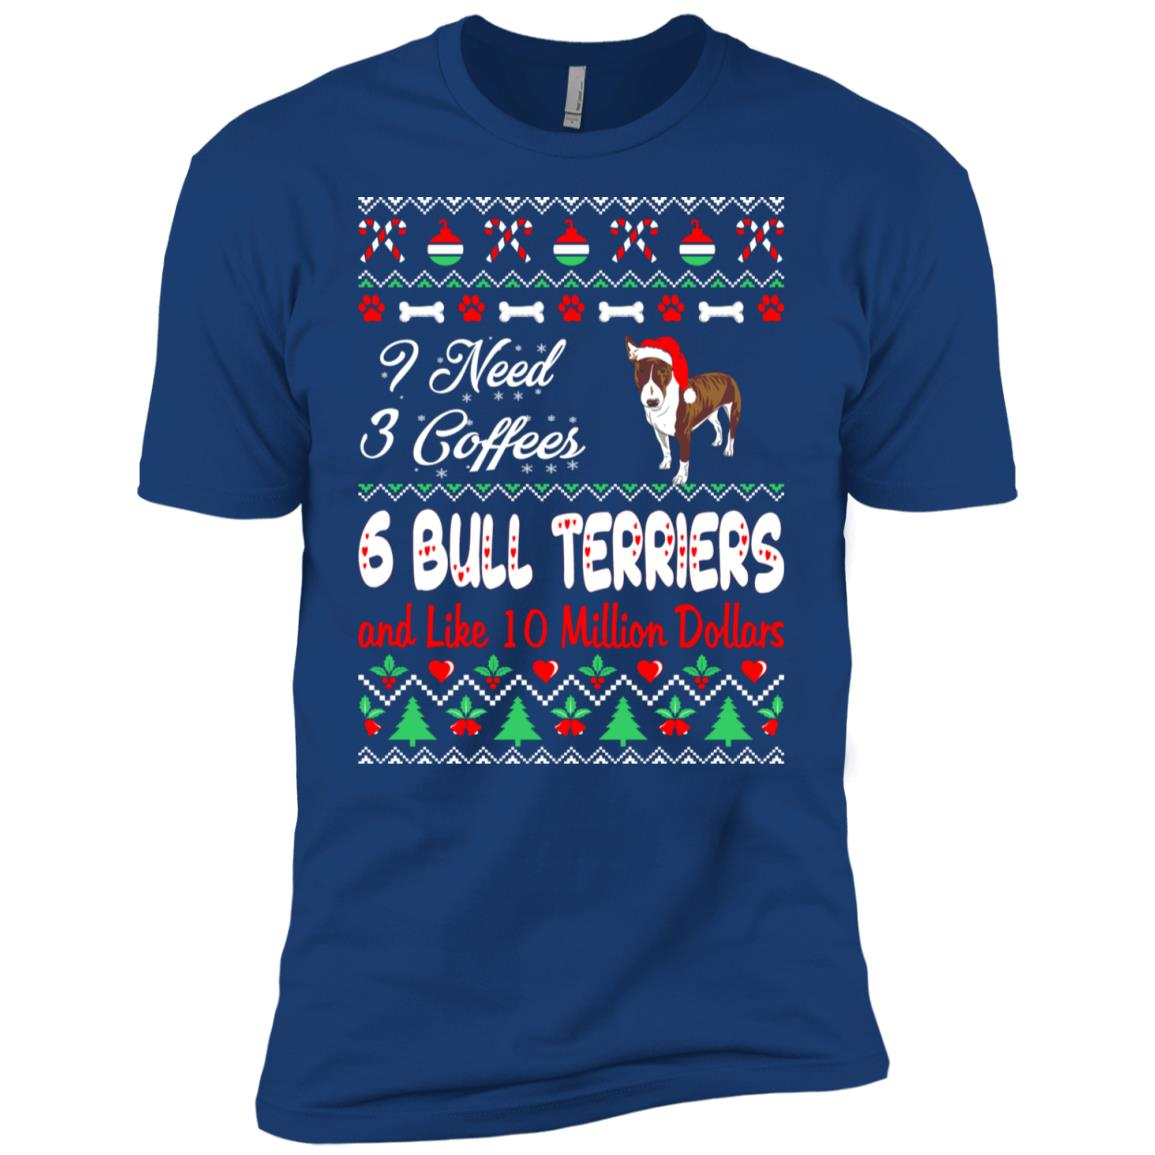 Need 3 Coffees 6 Bull Terriers Christmas Ugly Sweater-1 Men Short Sleeve T-Shirt